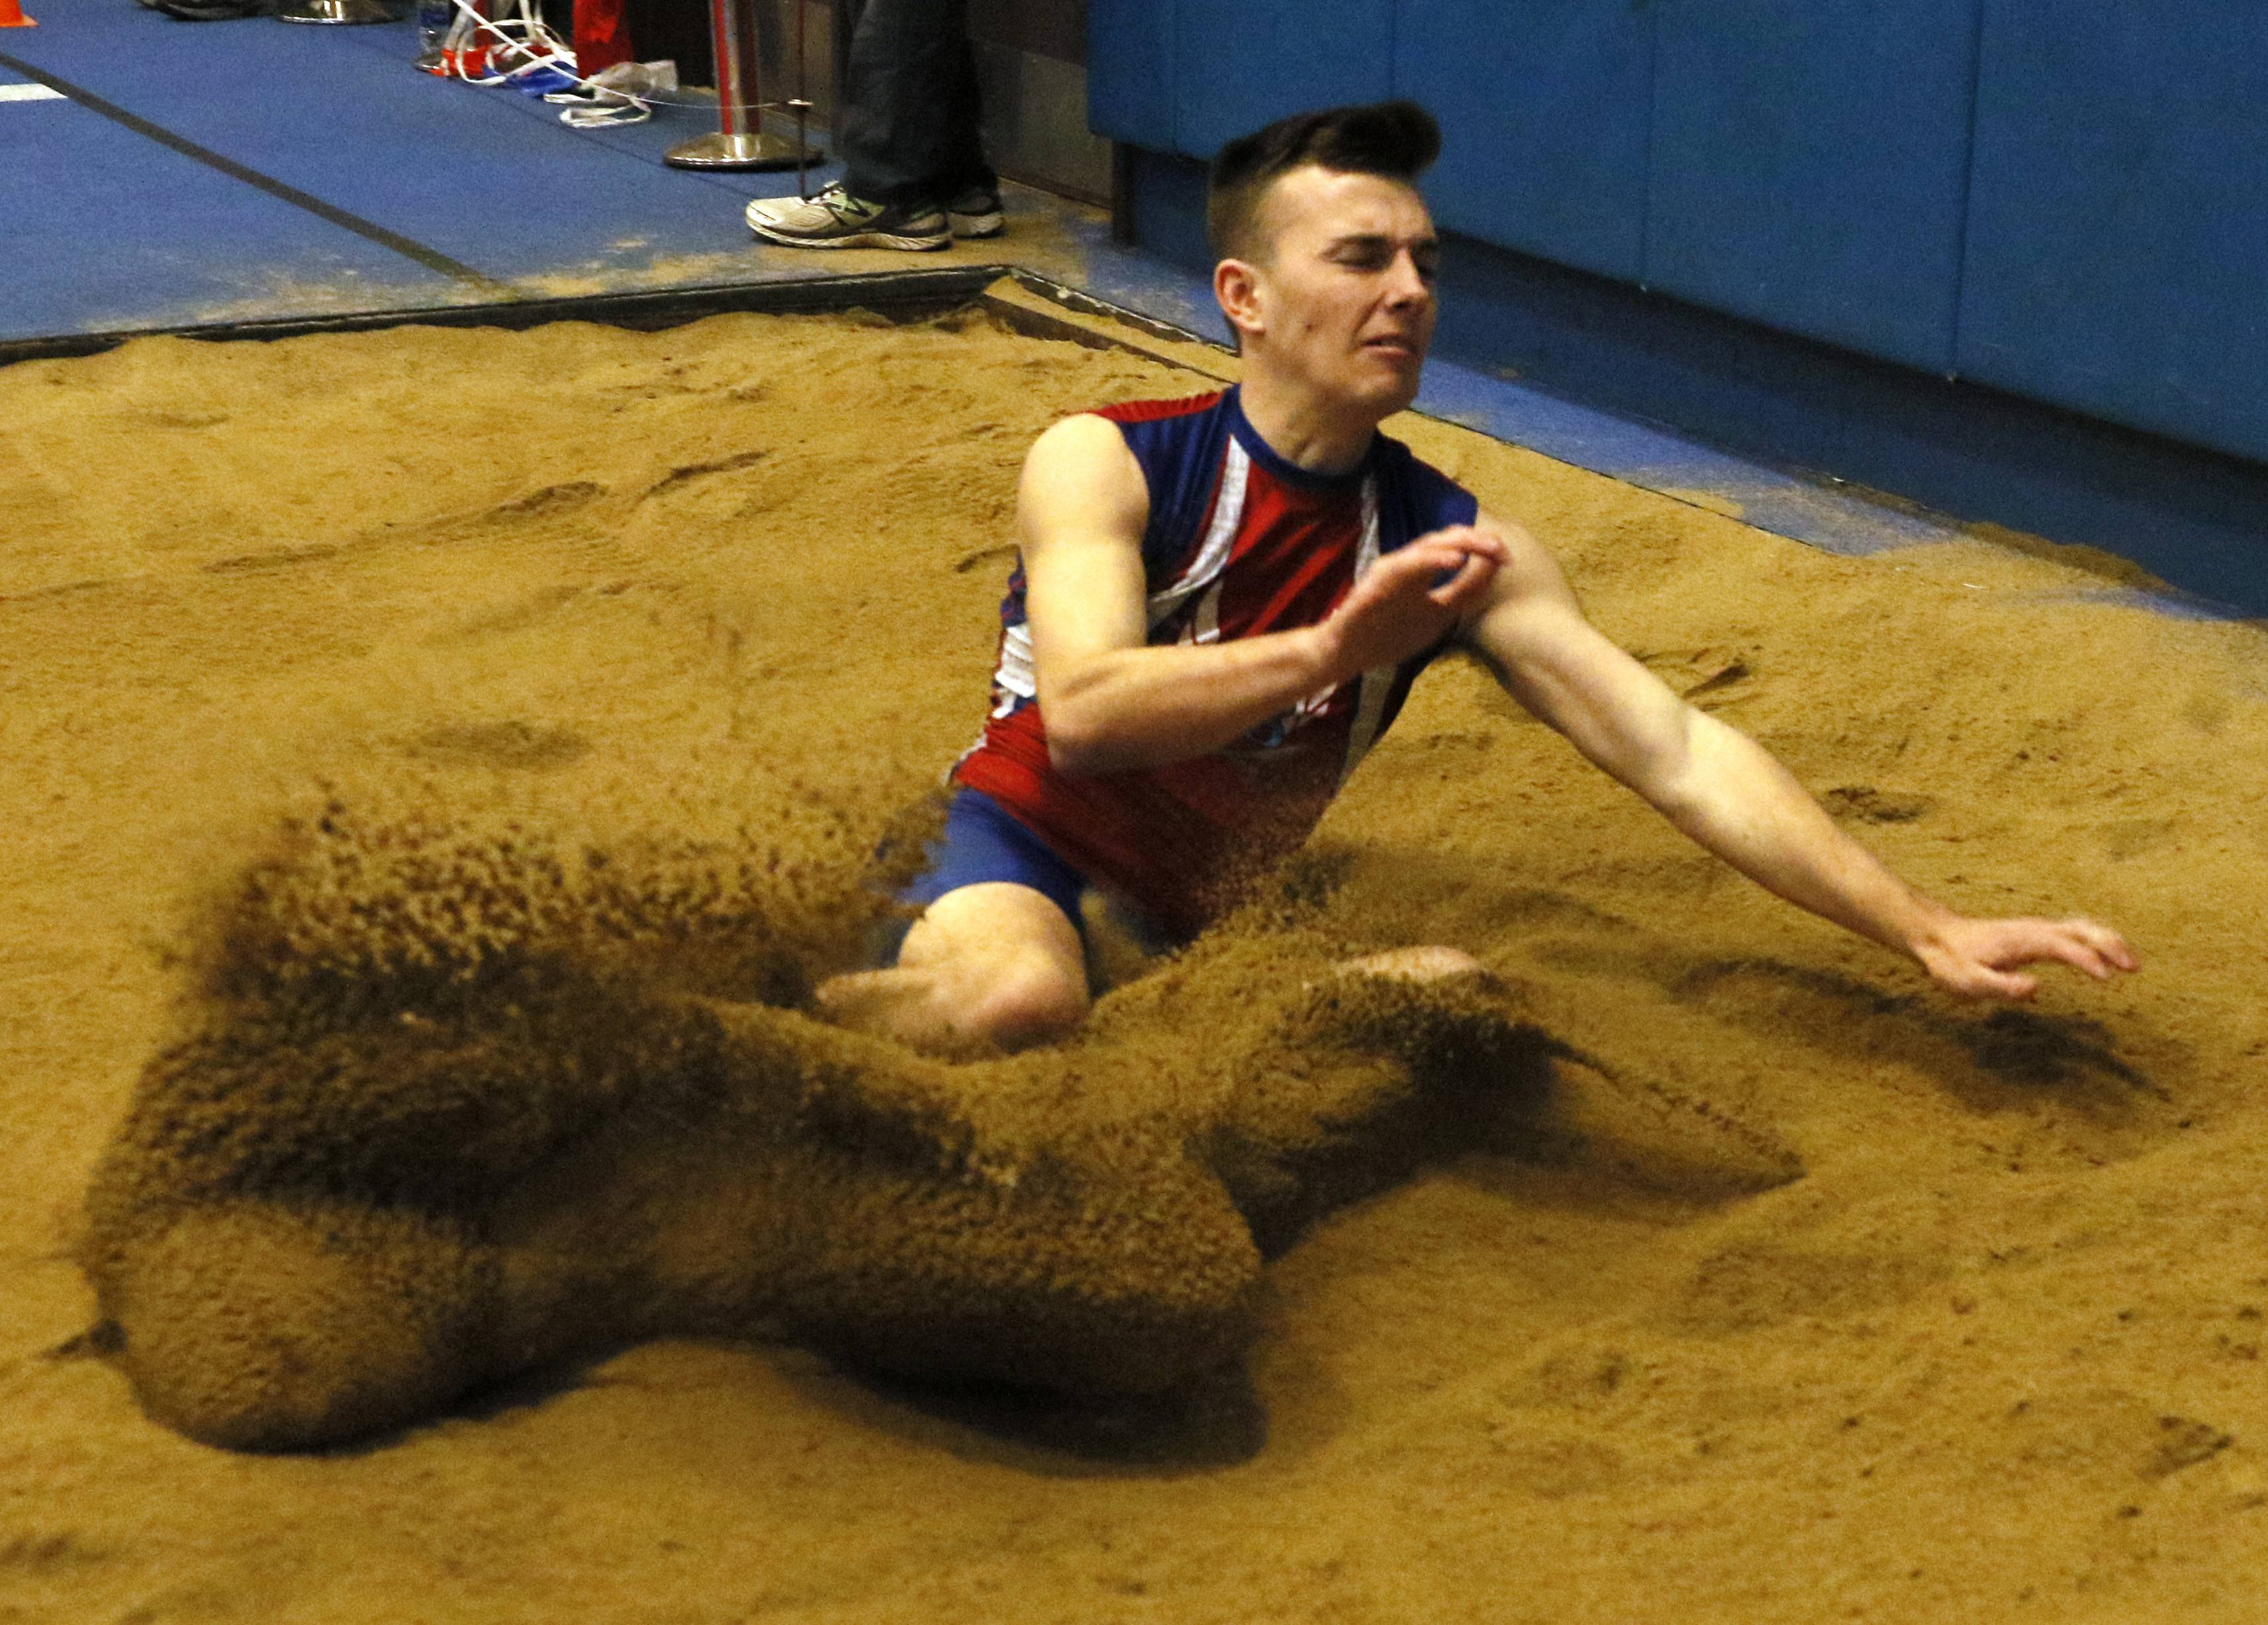 Glenbard South's Michael Zima completes his long jump during the Metro Suburban Conference boys indoor track meet at Glenbard South High School.